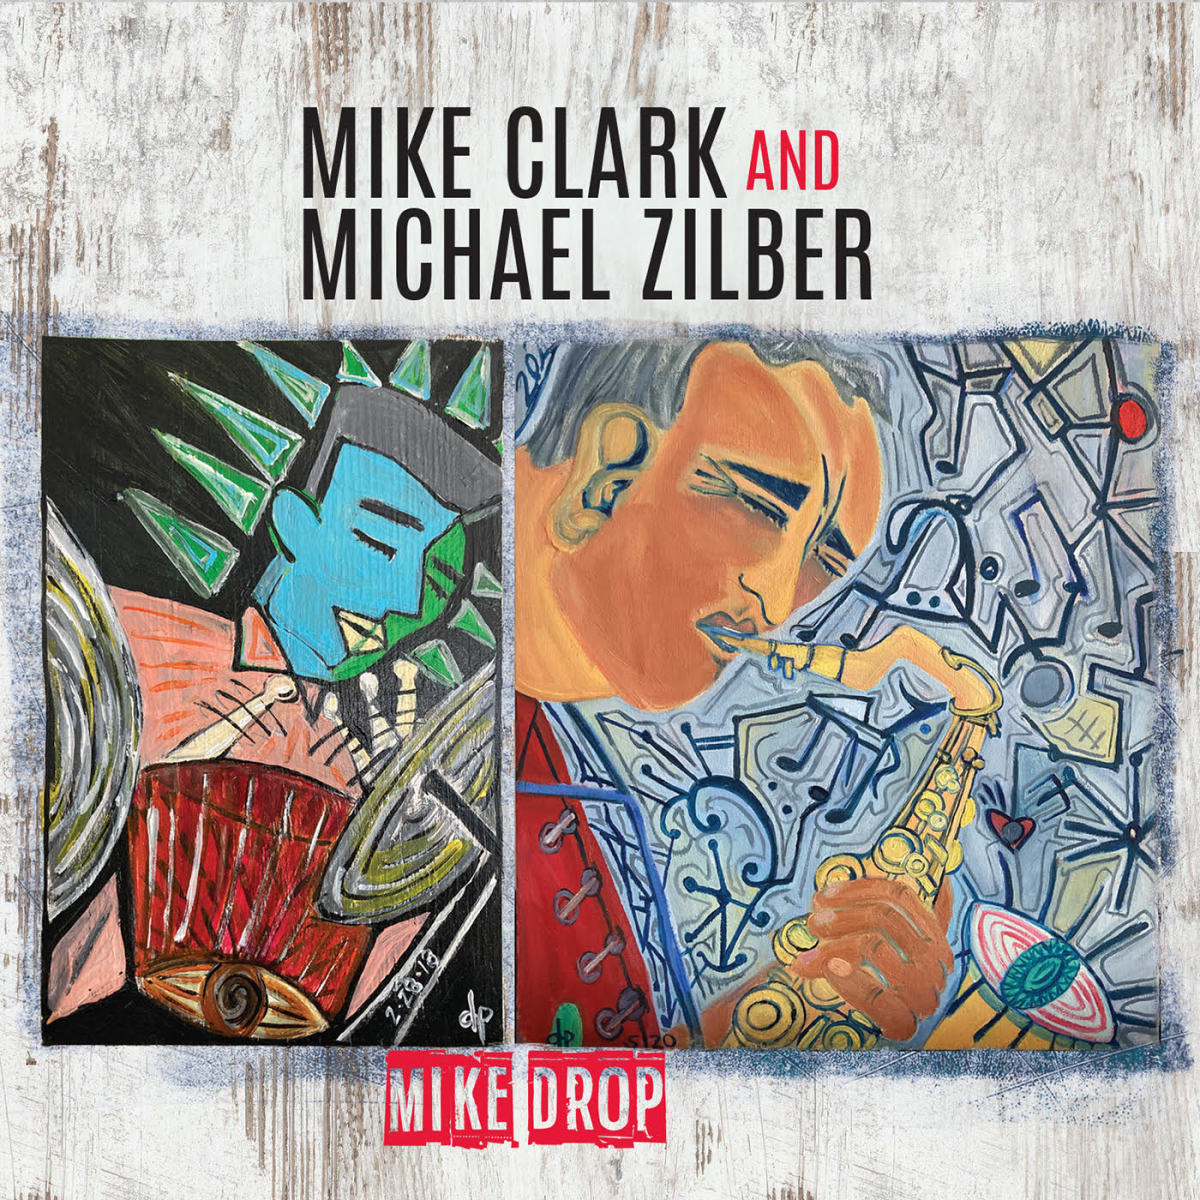 Mike Clark and Michael Zilber